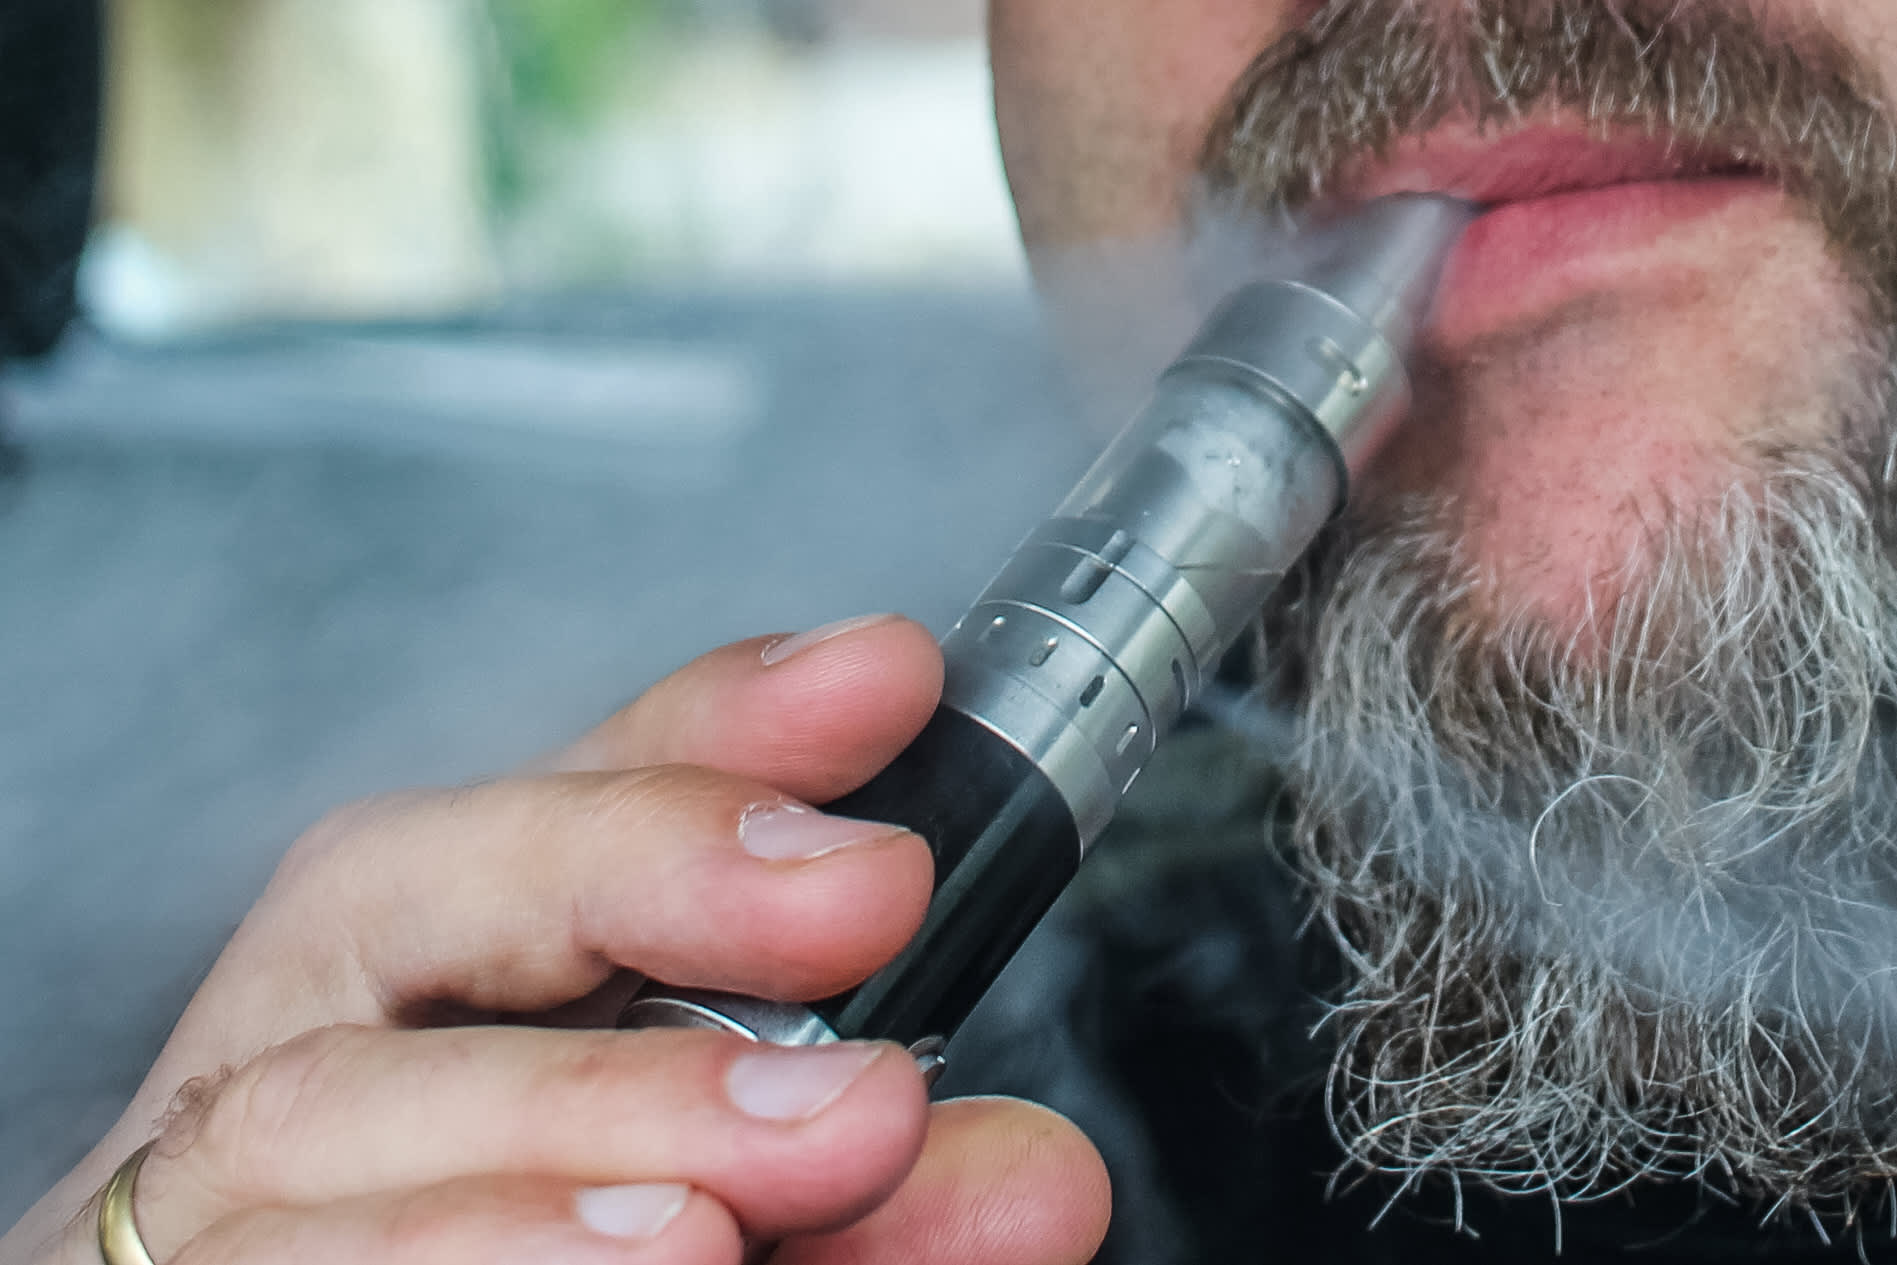 Prudential to charge higher insurance rates for people who vape — the same as smokers